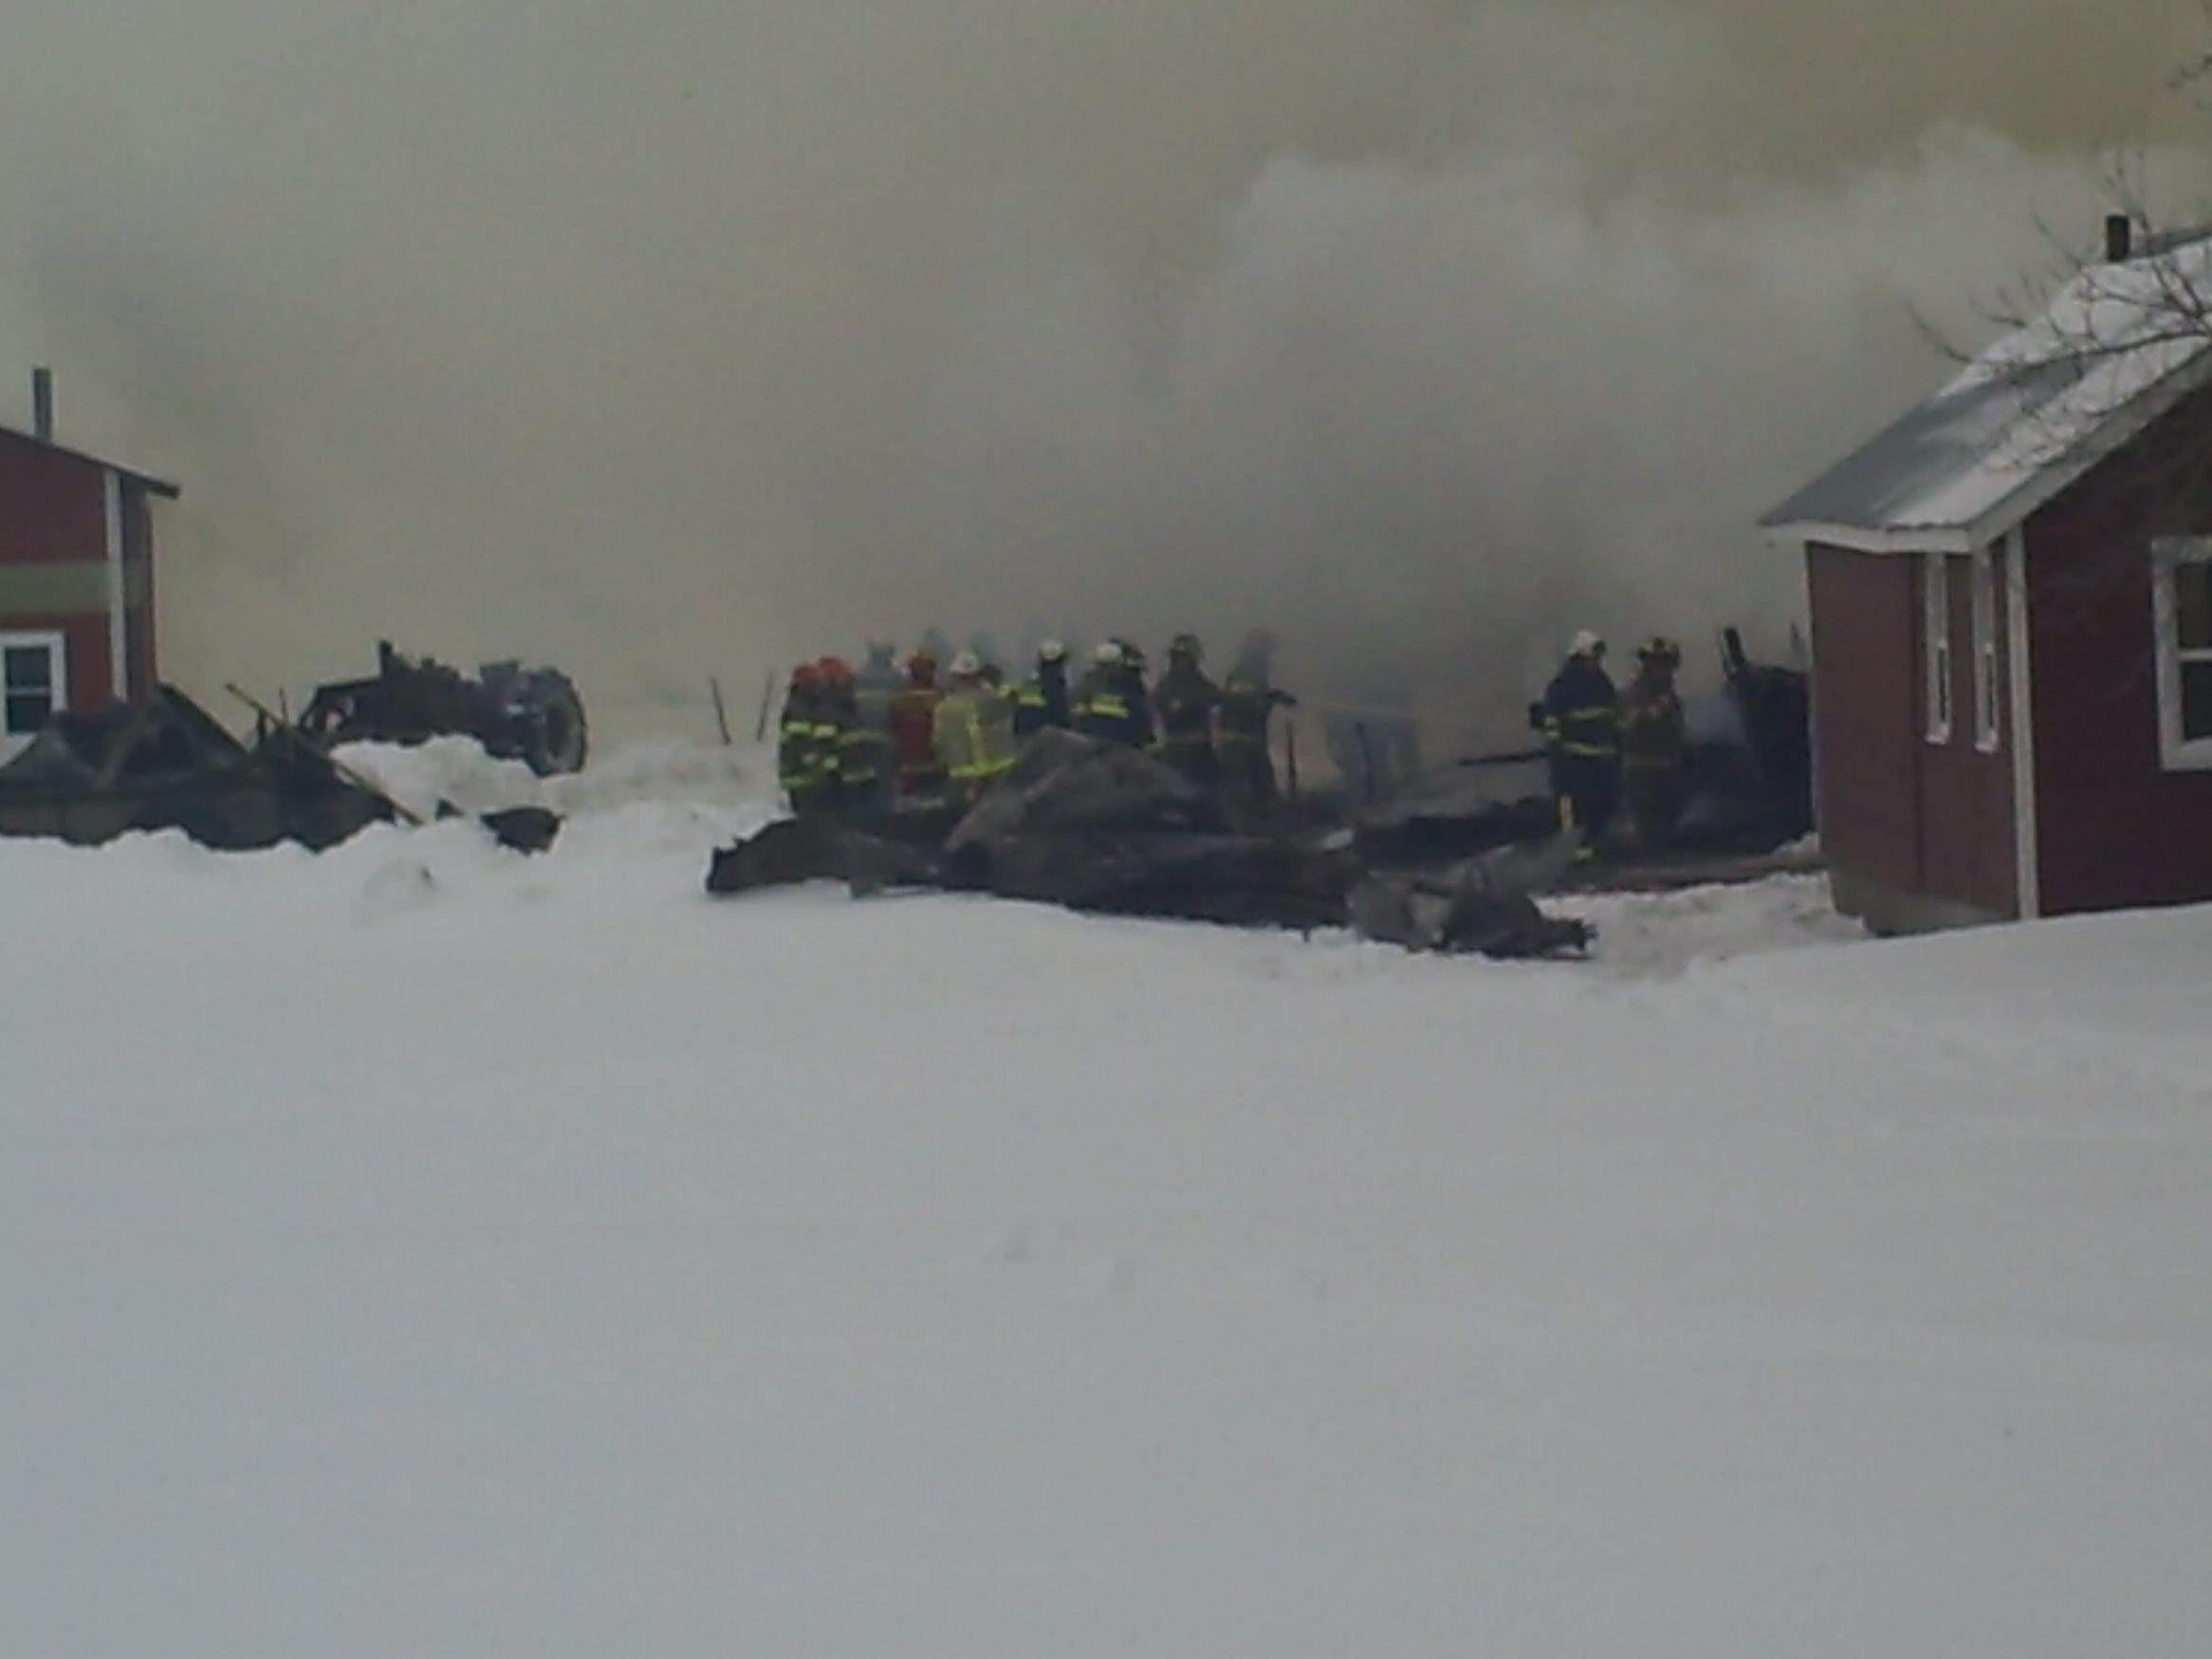 Fire Fighters wetting down the barn